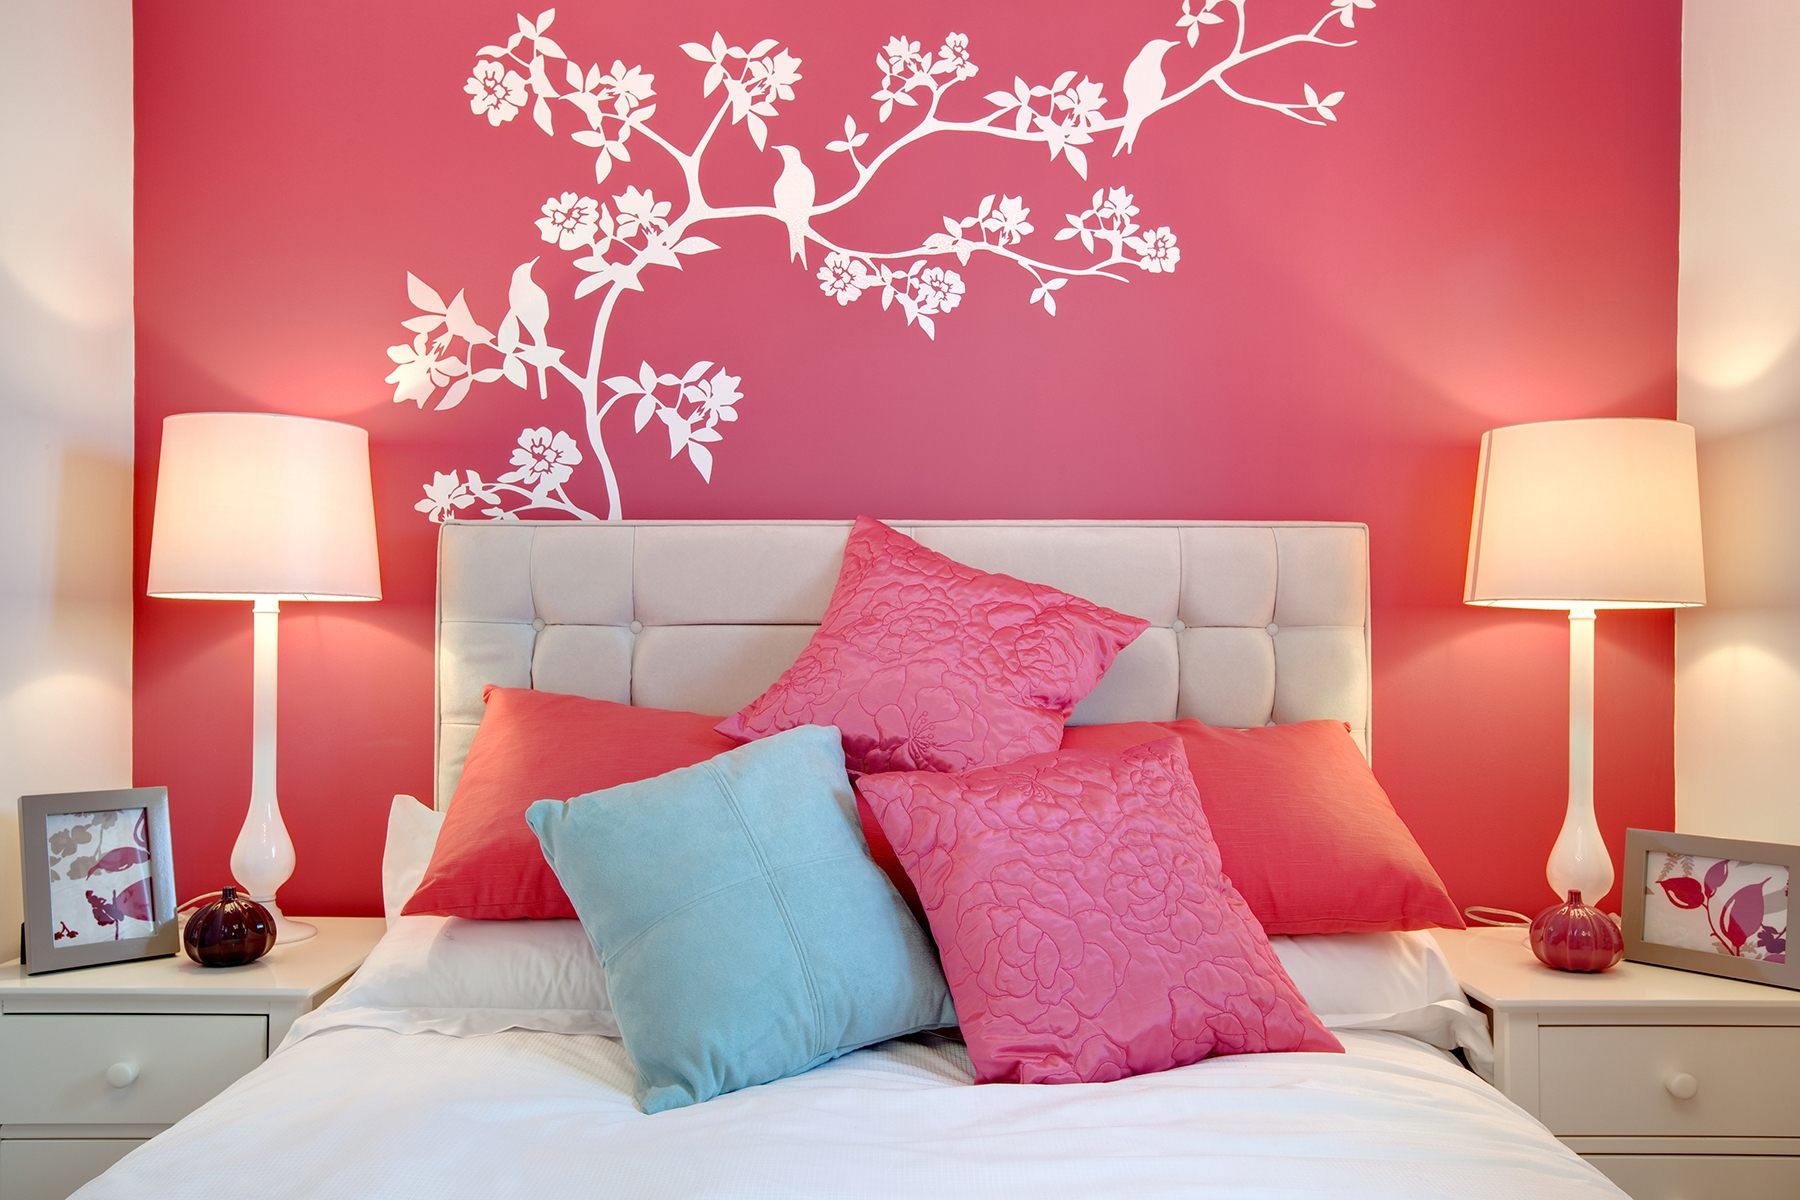 Amazing Easy Wall Paint Ideas Diy Painting Home Decor To Bedroom wall painting ideas for bedroom